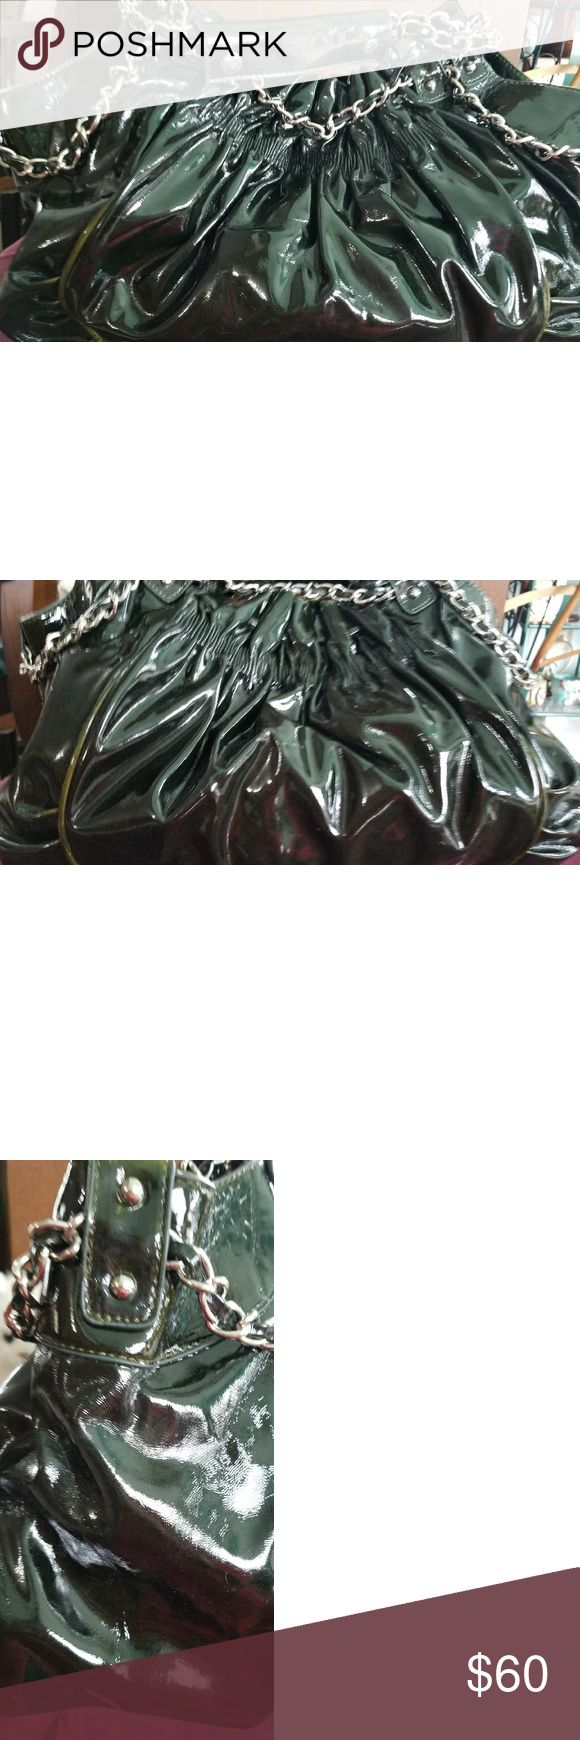 VINTAGE Bagtique faux patent leather slouch purse Black slouch bag large with silver chain strap and adornment.  Has floral cotton fabric lining. Inside has zippered divider and 2 slide in pockets on 1 side and a zippered back on other. Black with olive green tipped as shown in picture. Preowned excellent condition bagtique Bags Satchels